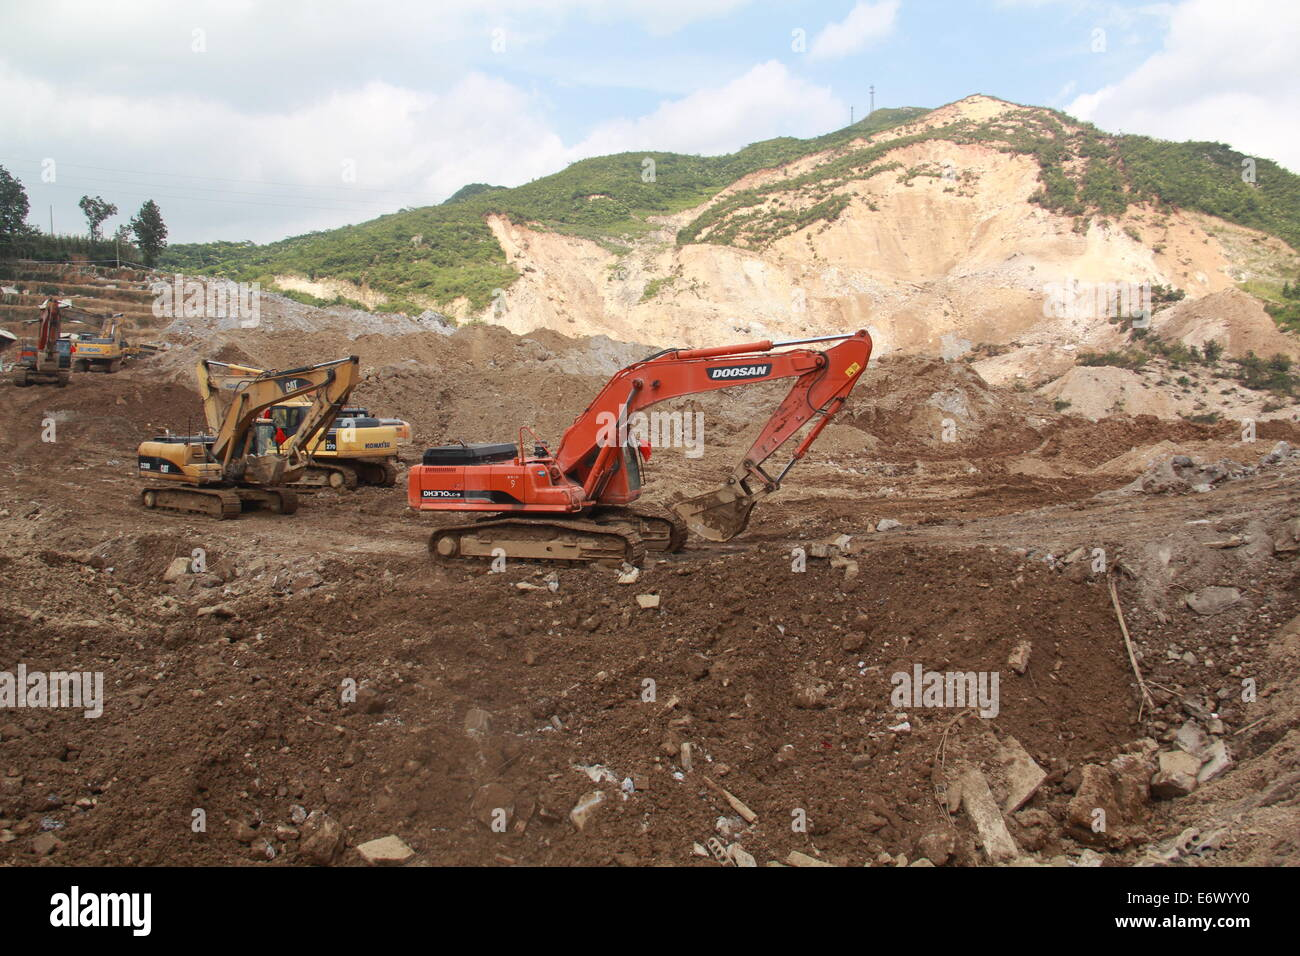 Yingping, China. 01st Sep, 2014. Excavators work at the site where a landslide occurred in Yingping Village, Fuquan - Stock Image